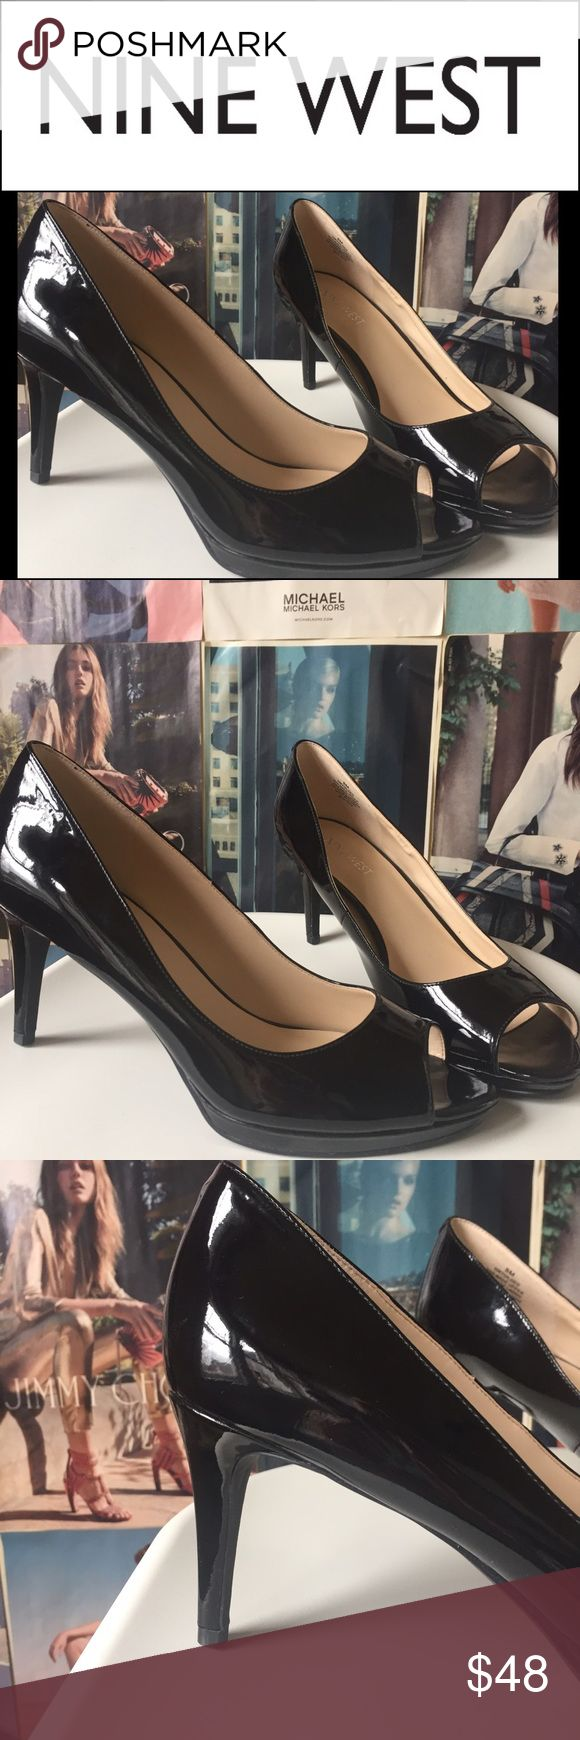 "NEWNine West | black Gilded peep toe pump NIB The perfect shoe, really! These Nine West Gilded peep toe pumps are wearable both as a comfortable shoe and as a classic that goes with anything. 8M. Heel 3"", platform 1/2"". Patent look. Man made. NIB. Nine West Shoes Heels"